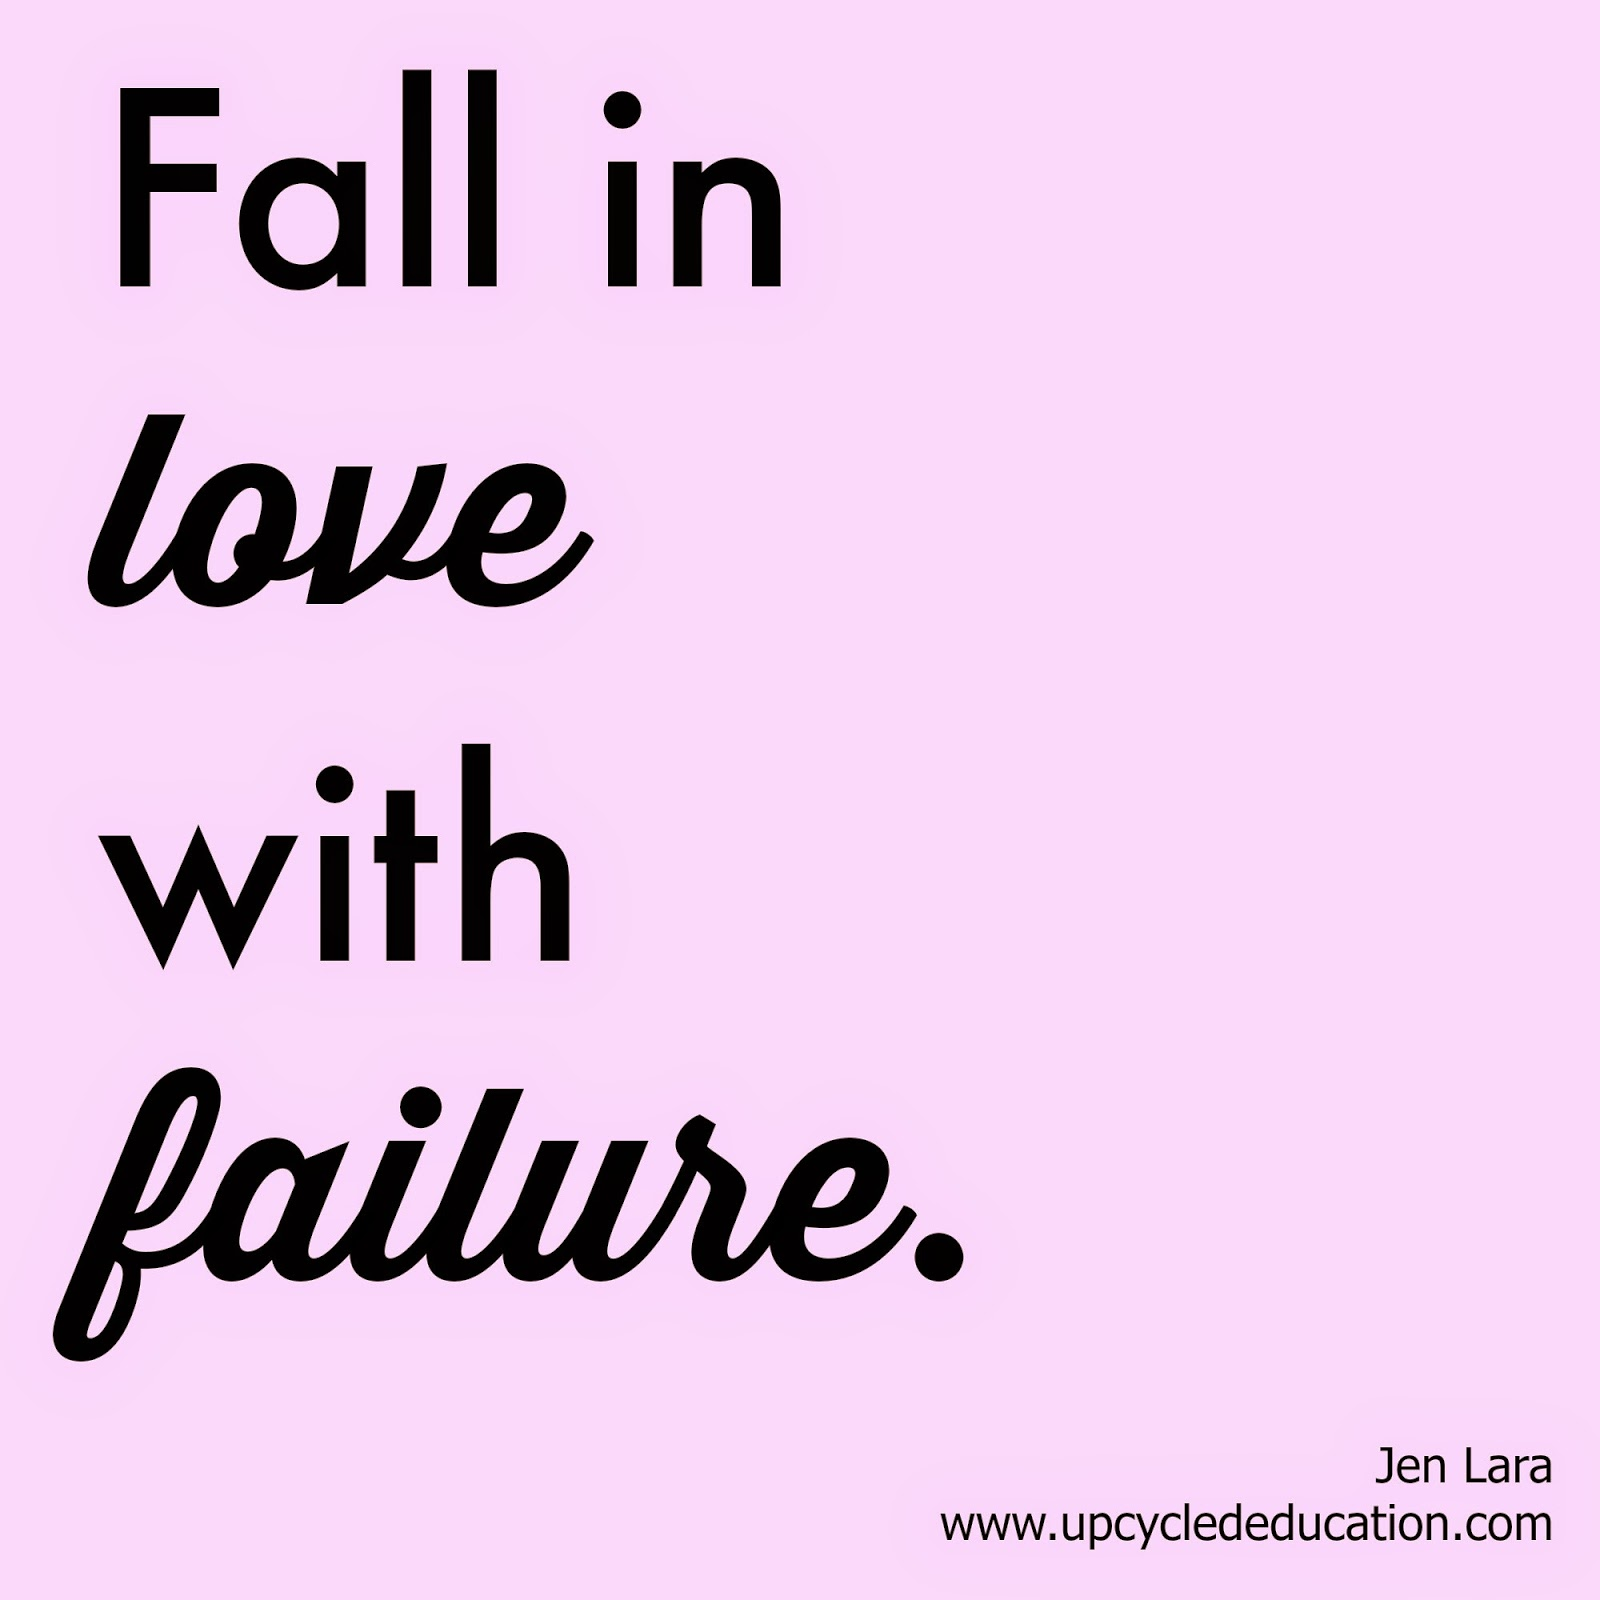 Fall in love with failure - Jen Lara